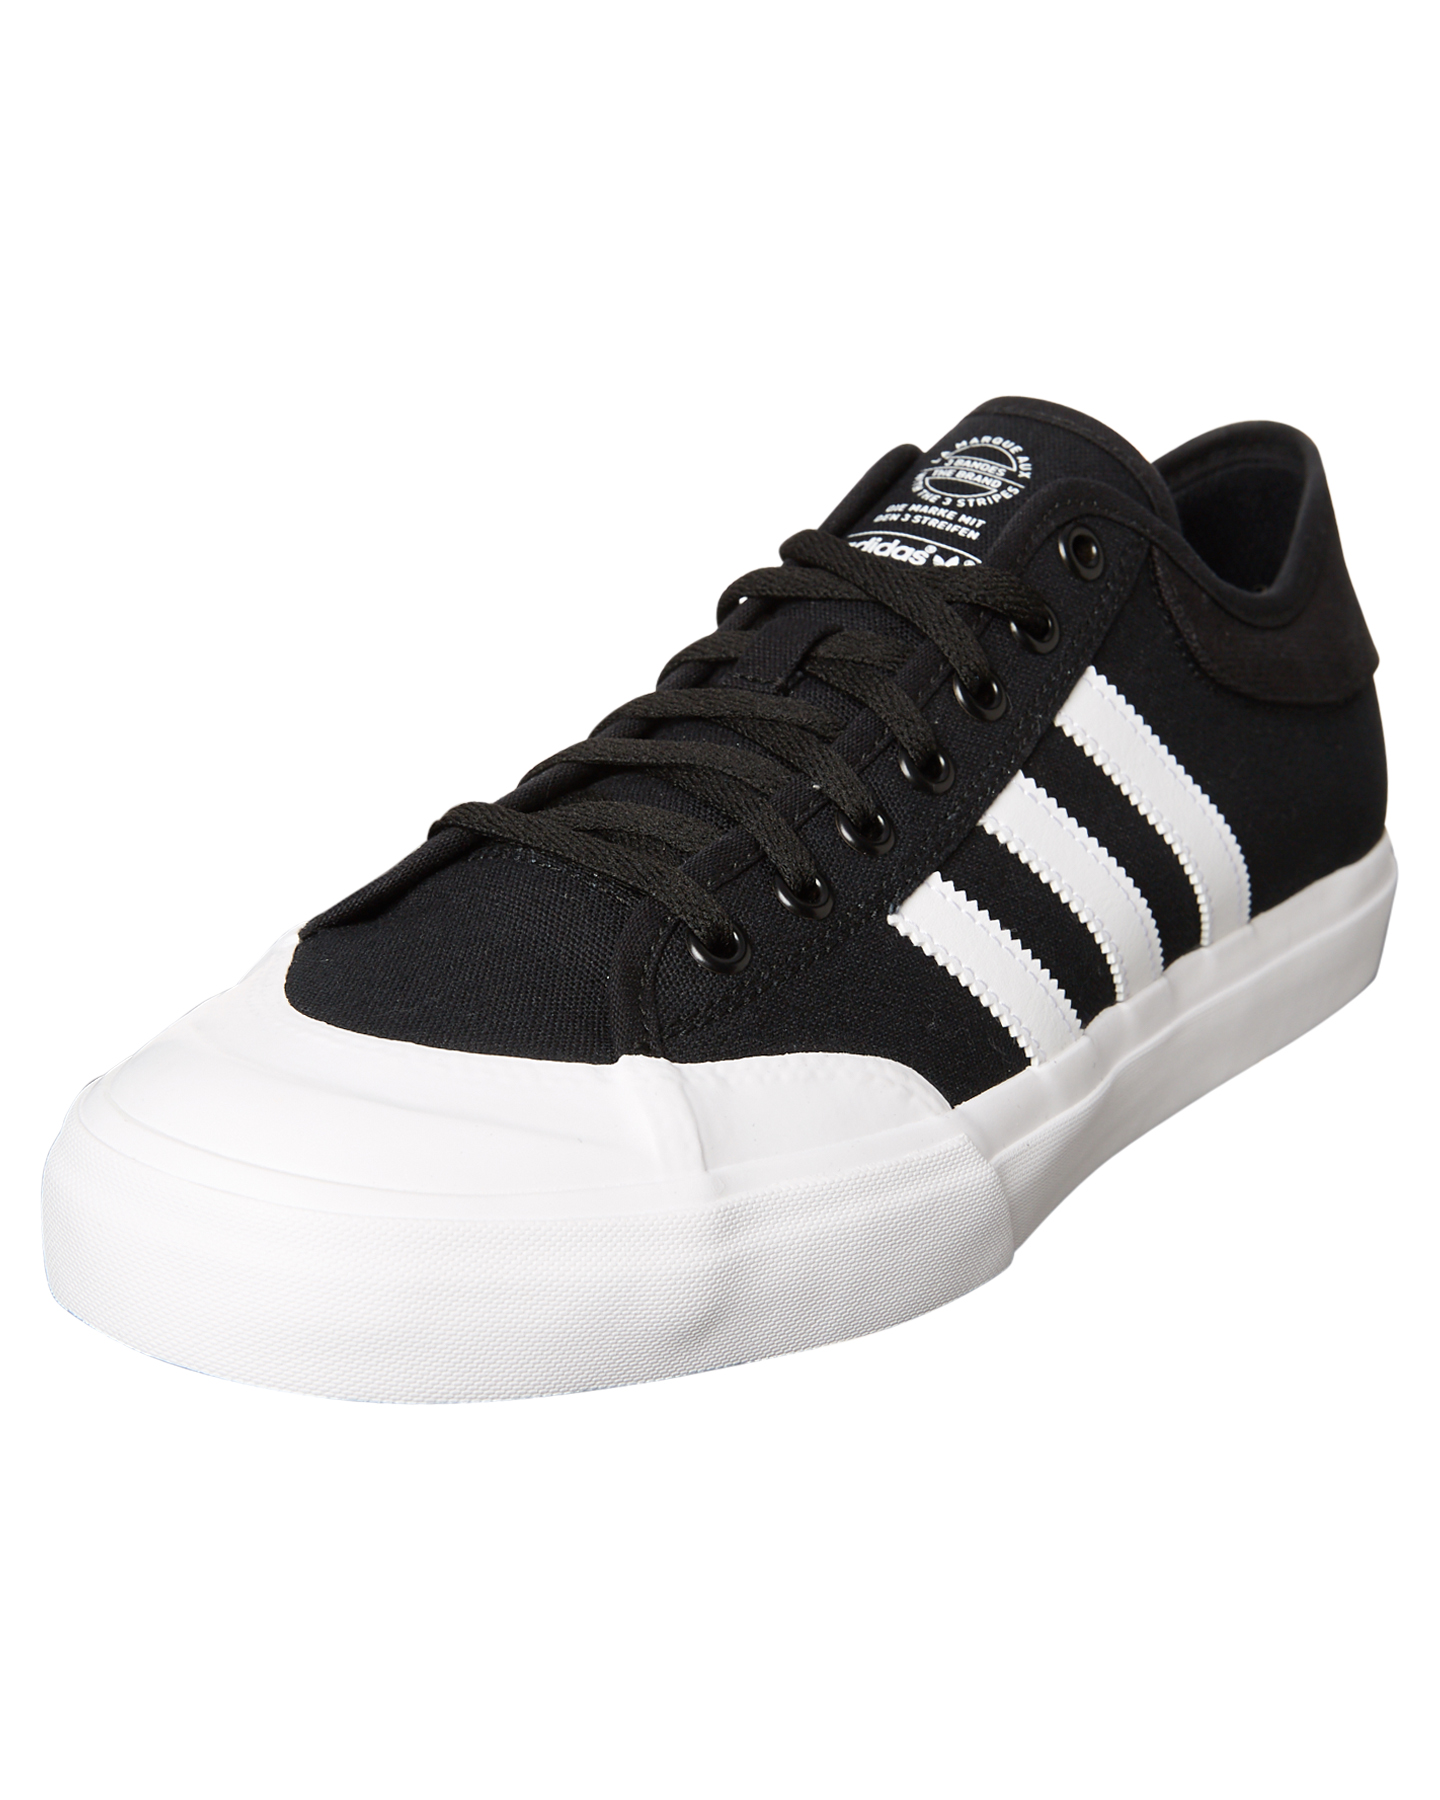 ... BLACK WHITE BLACK MENS FOOTWEAR ADIDAS SNEAKERS - SSF37383BLKM ...